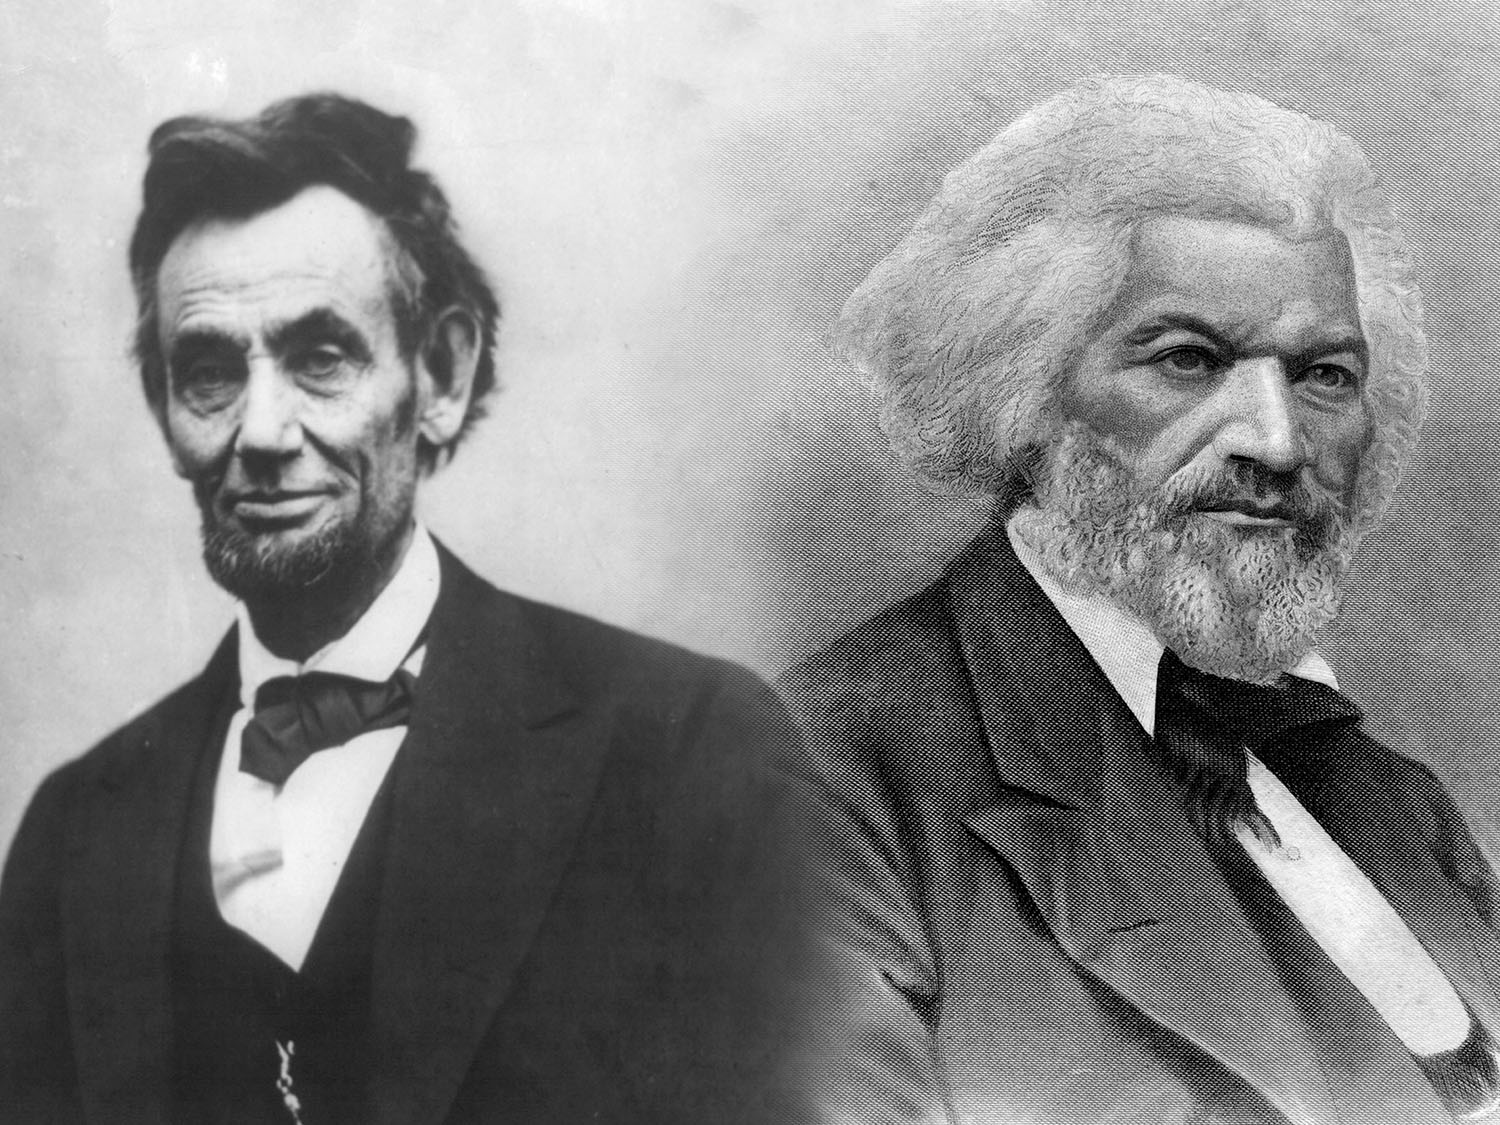 abraham lincoln and frederick douglass a compare and contrast abraham lincoln and frederick douglass a compare and contrast lesson plan scholastic